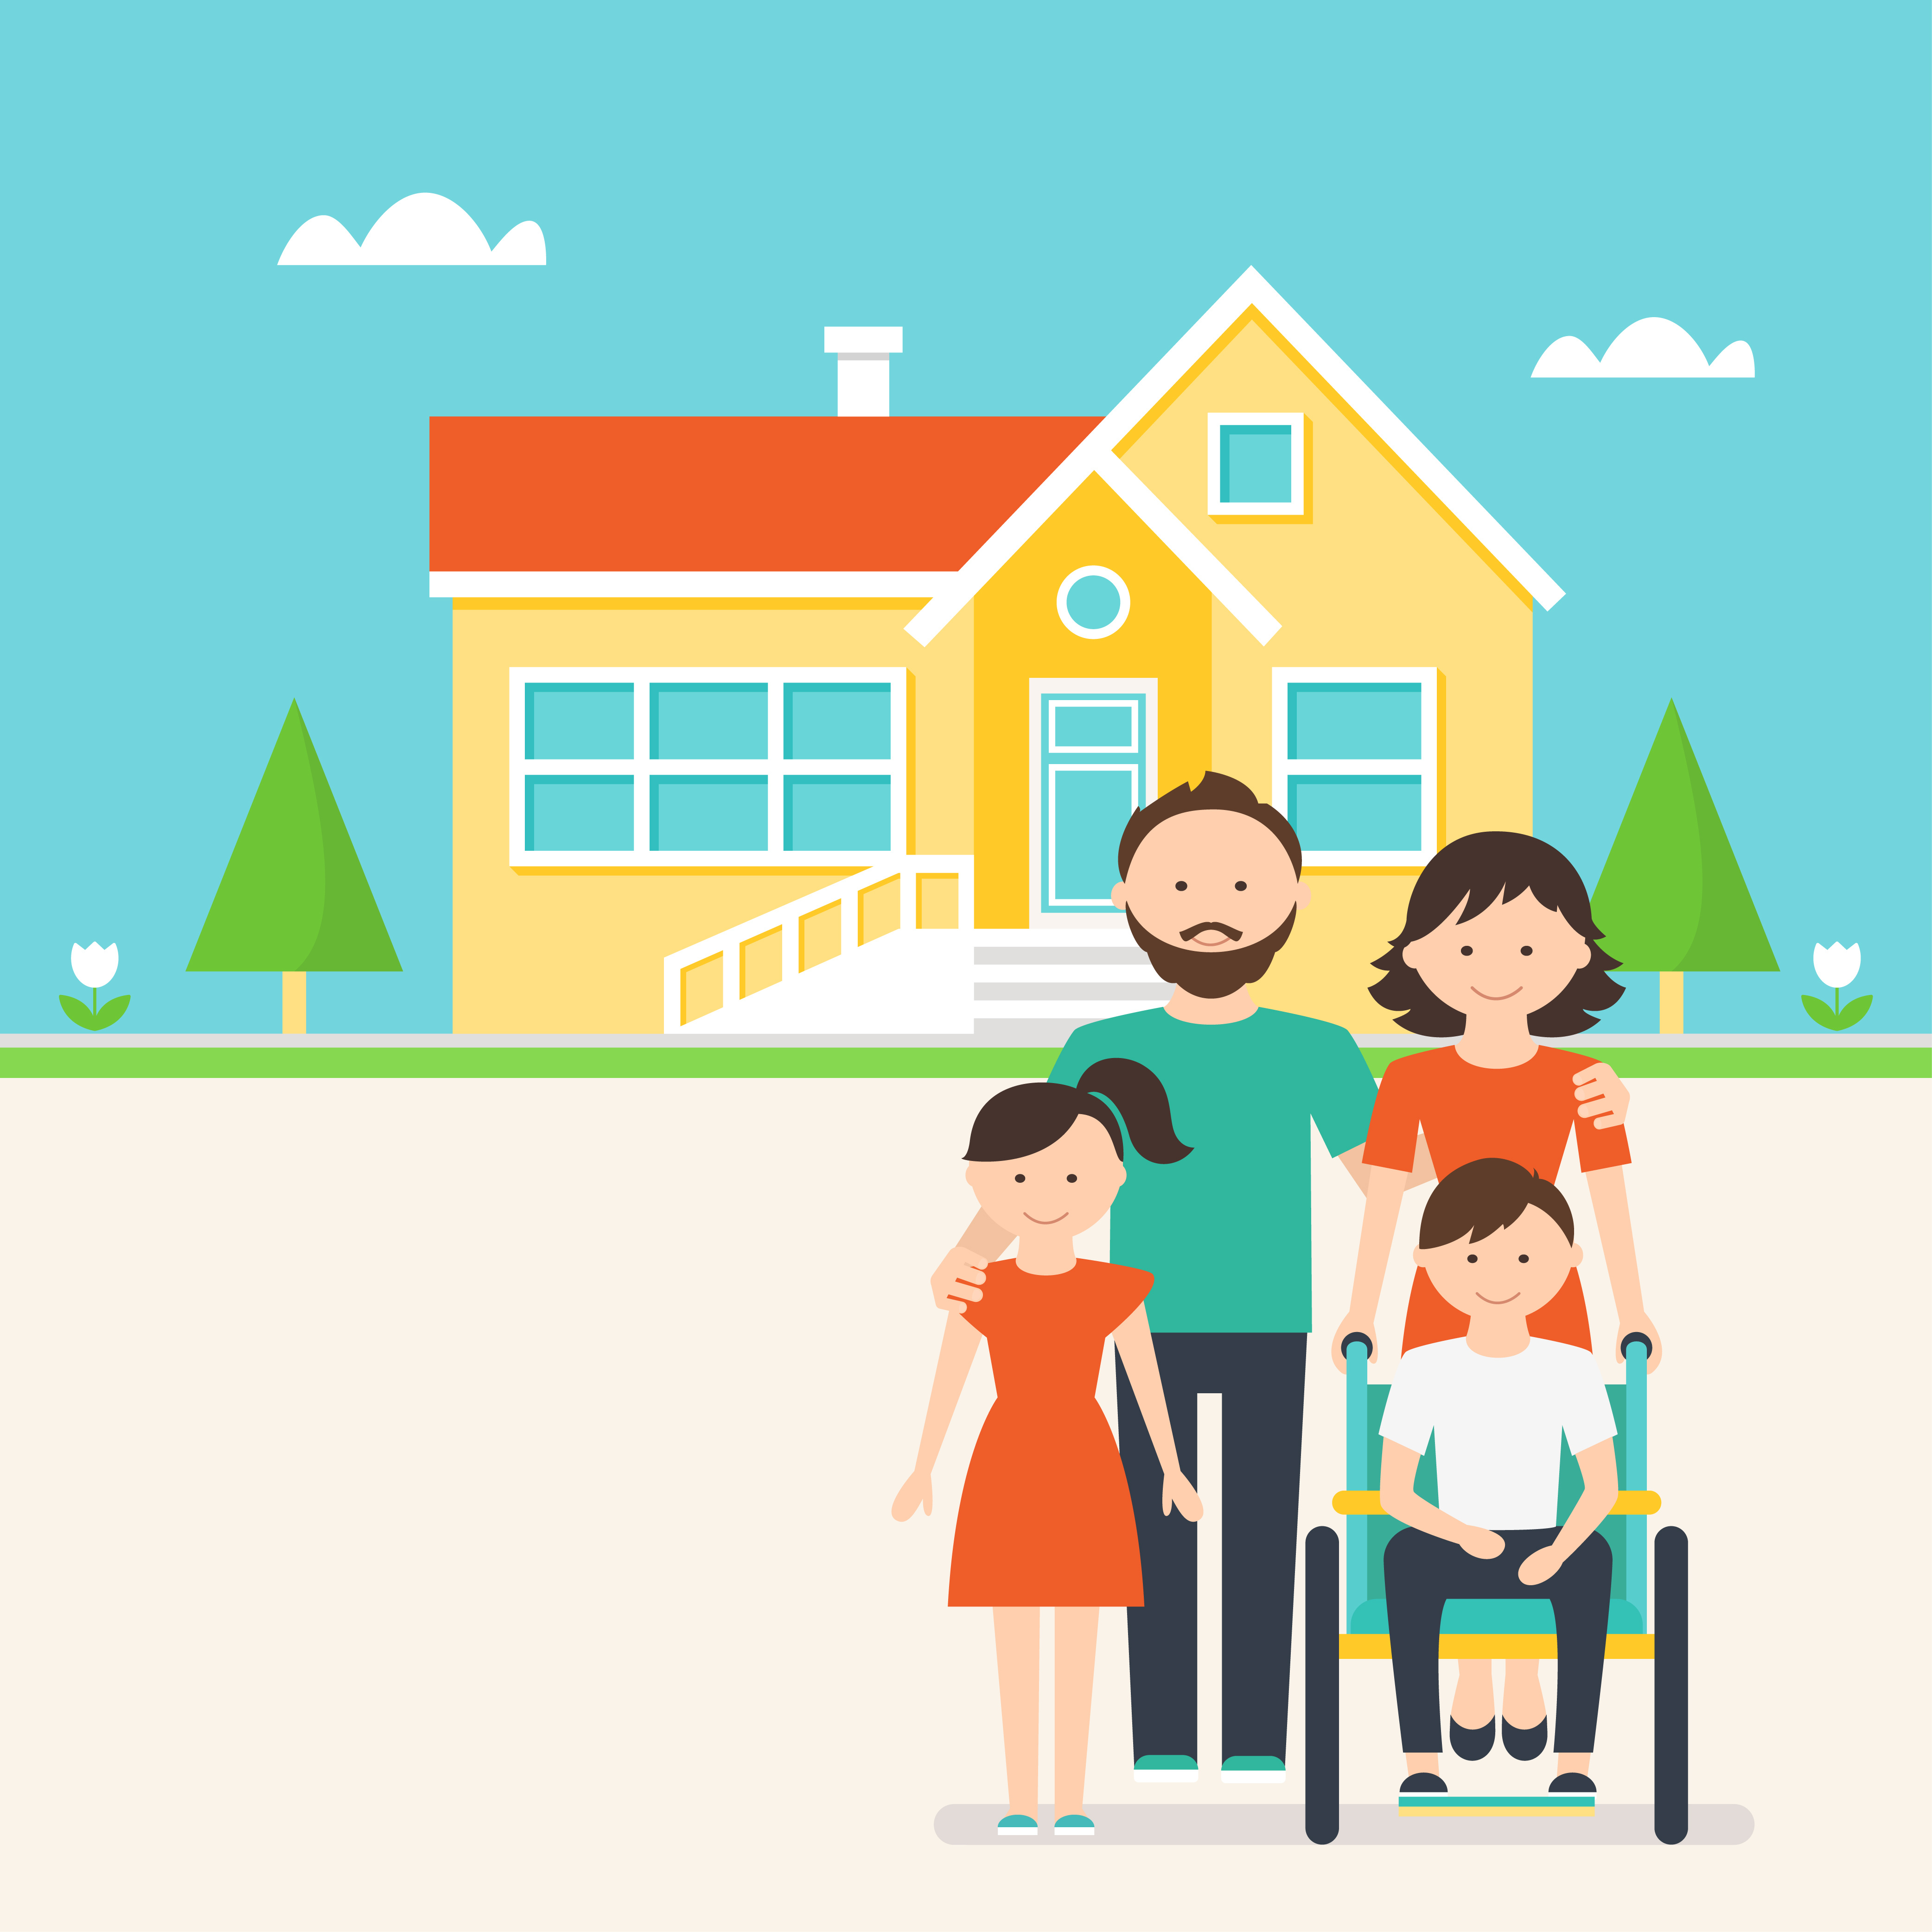 Accessible Housing for Families and Kids with Special Needs Illustration